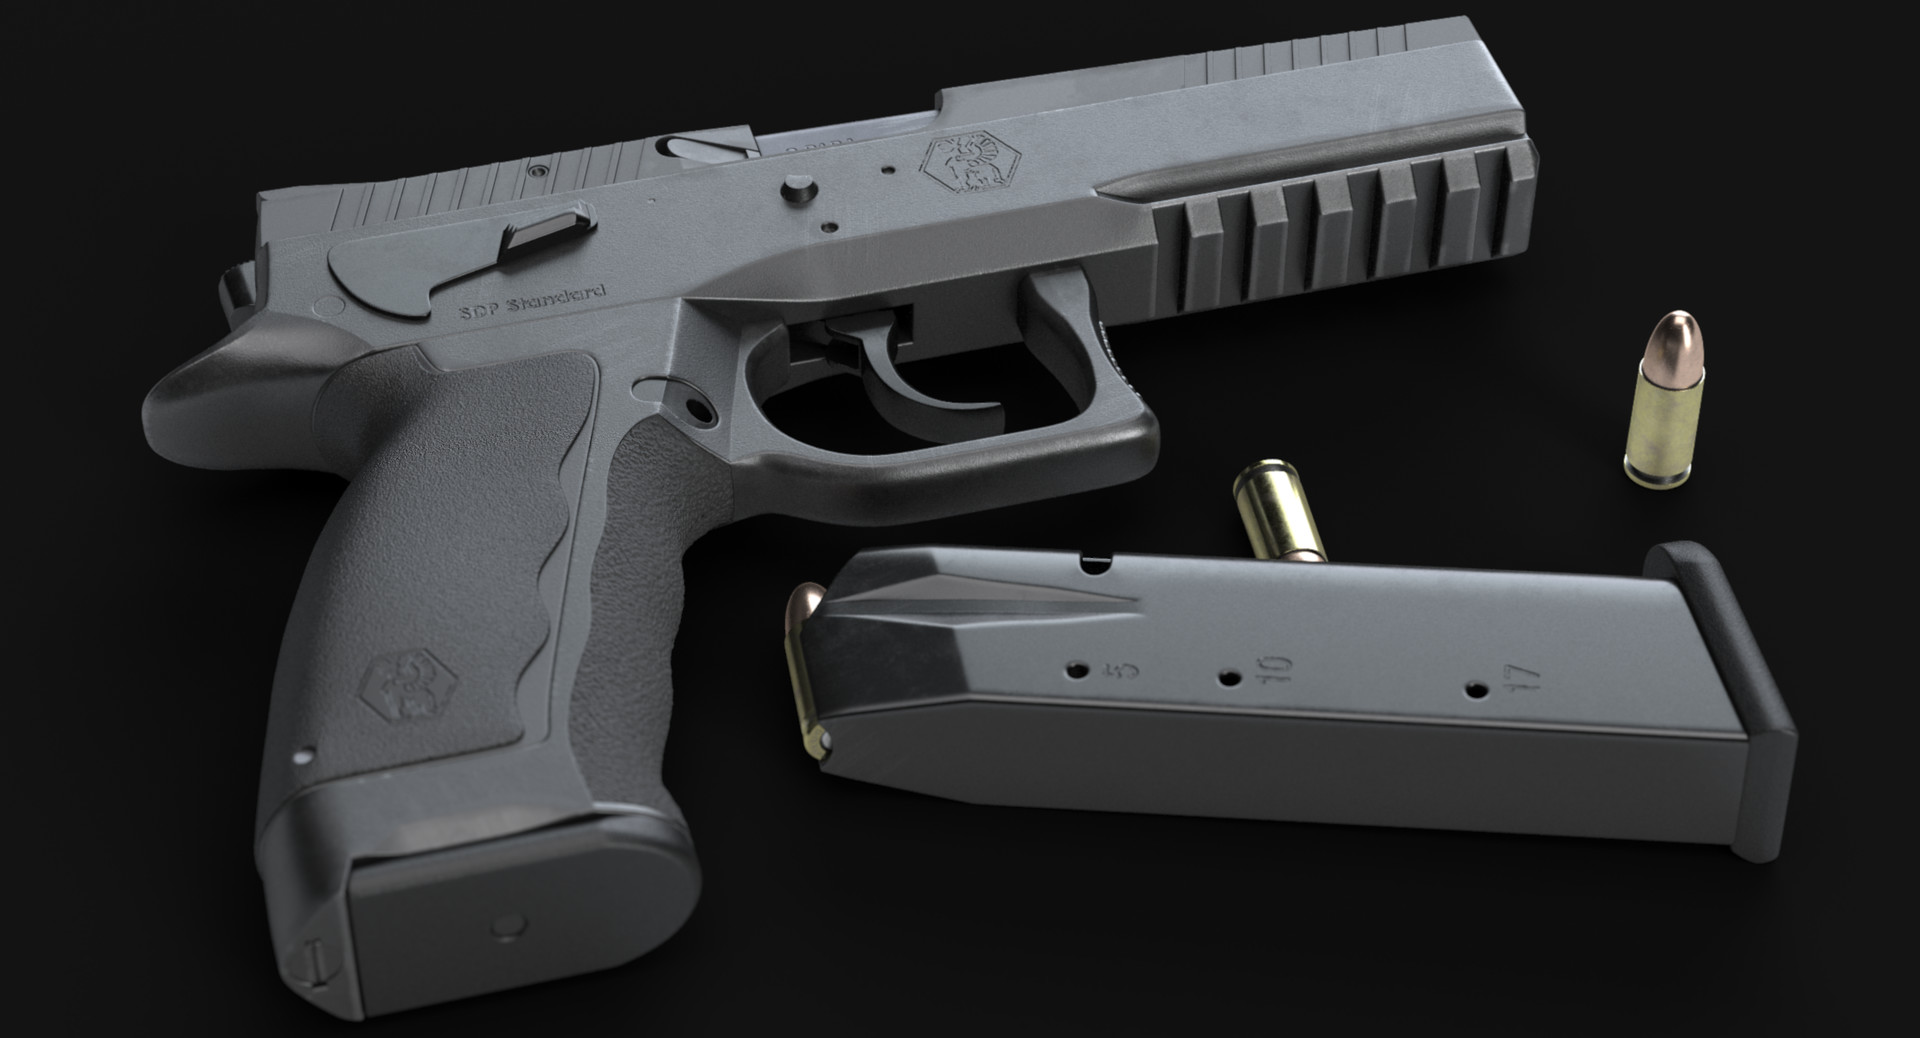 ArtStation - Sphinx SDP Standard (High-poly), FMJ_3d Dr